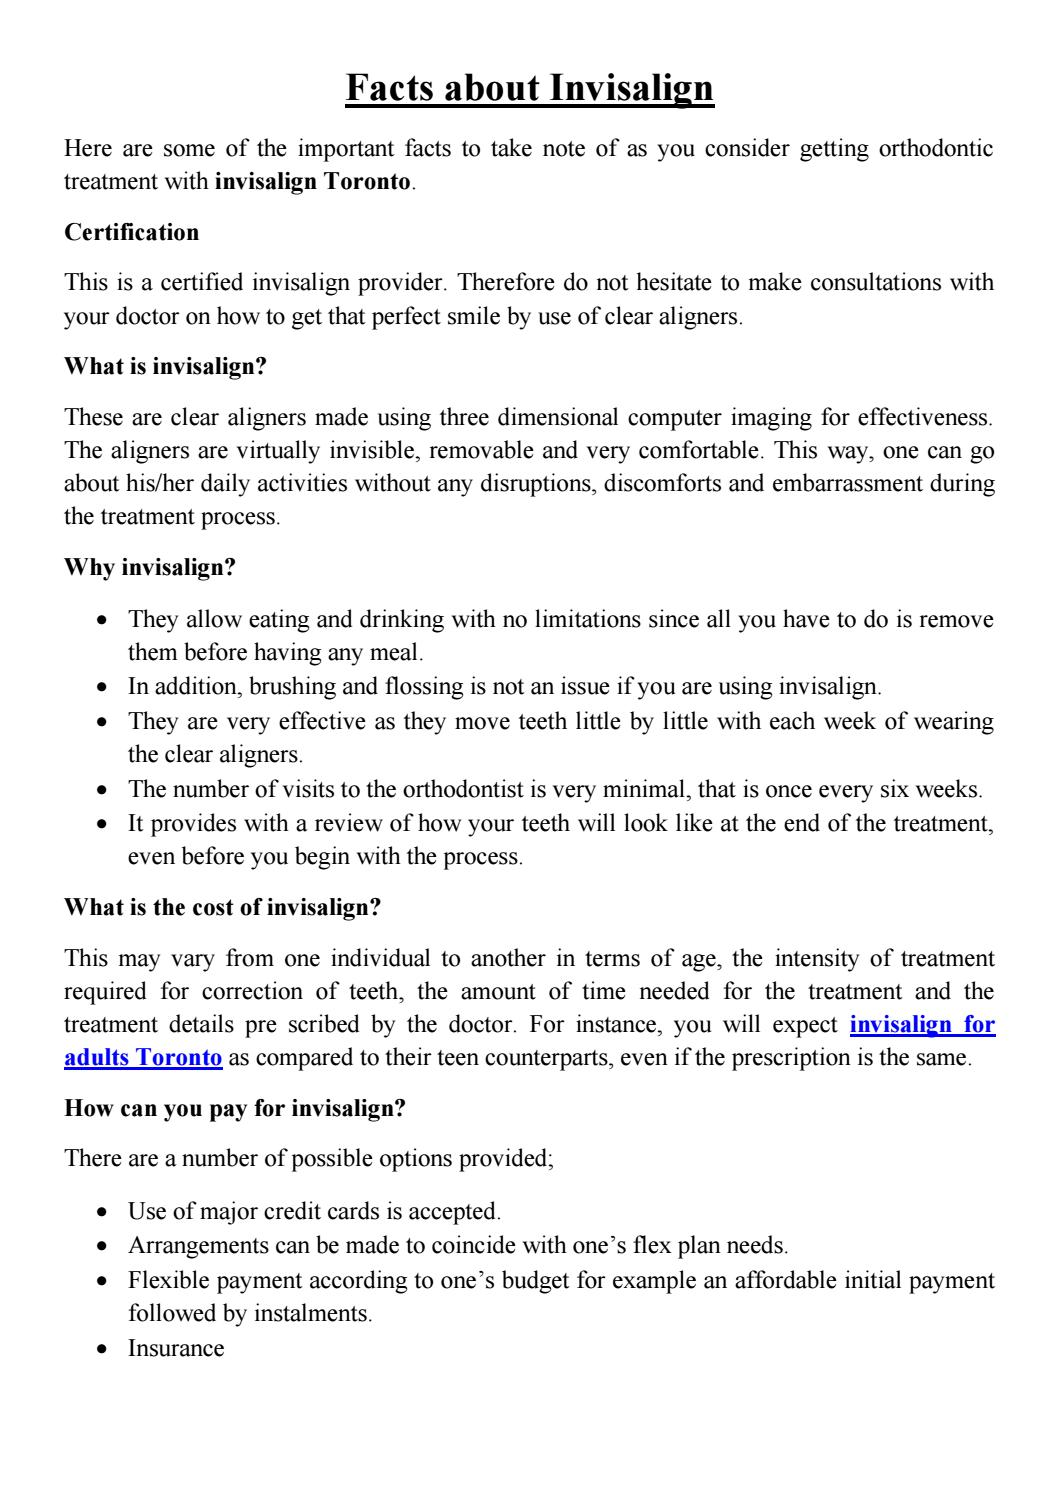 Facts About Invisalign By Borealis Orthodontics Issuu